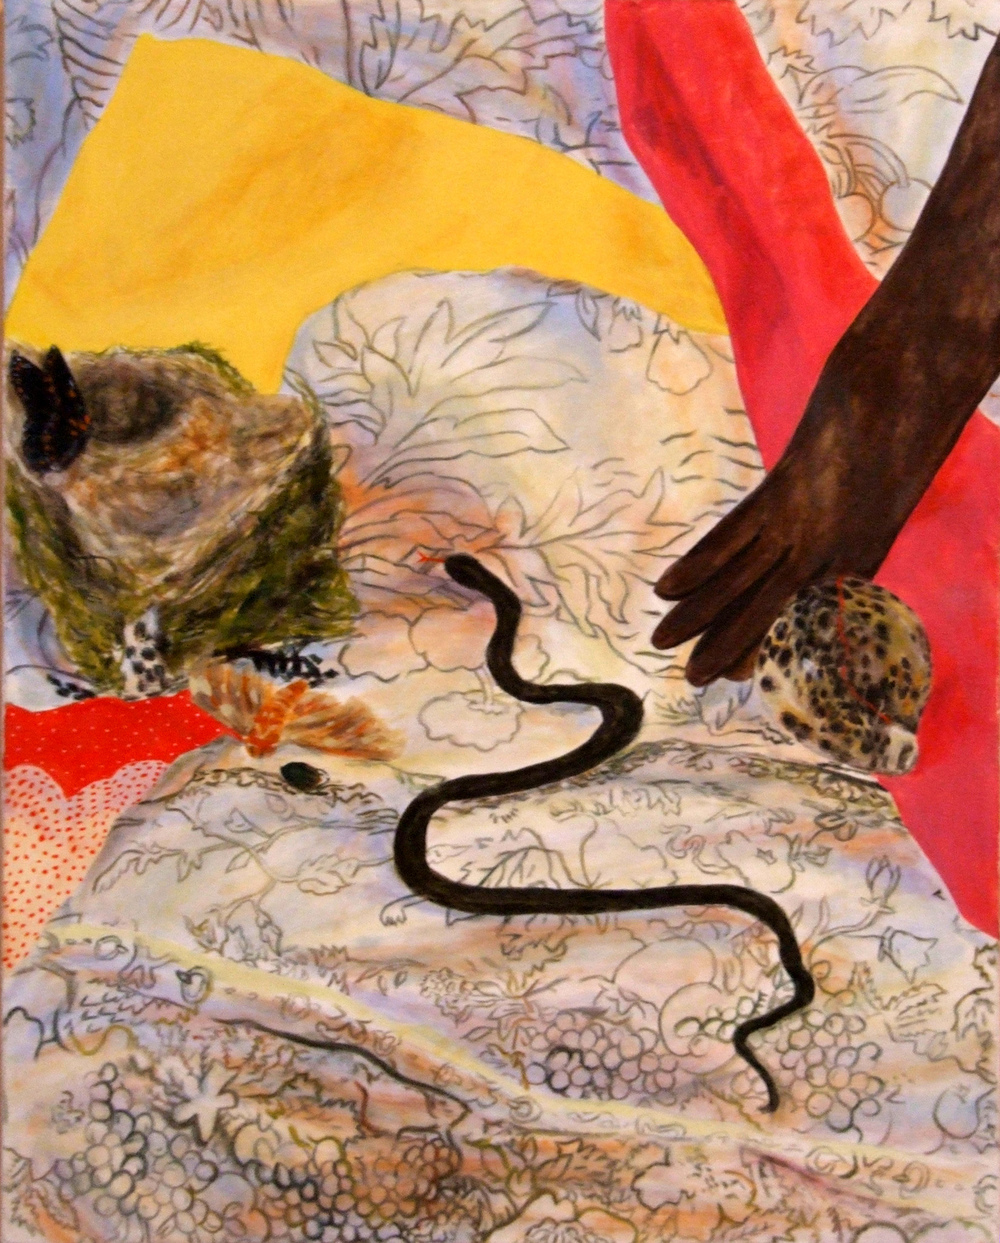 The day Lois Dodd brought me a dead snake to paint. 2006 Oil on Canvas